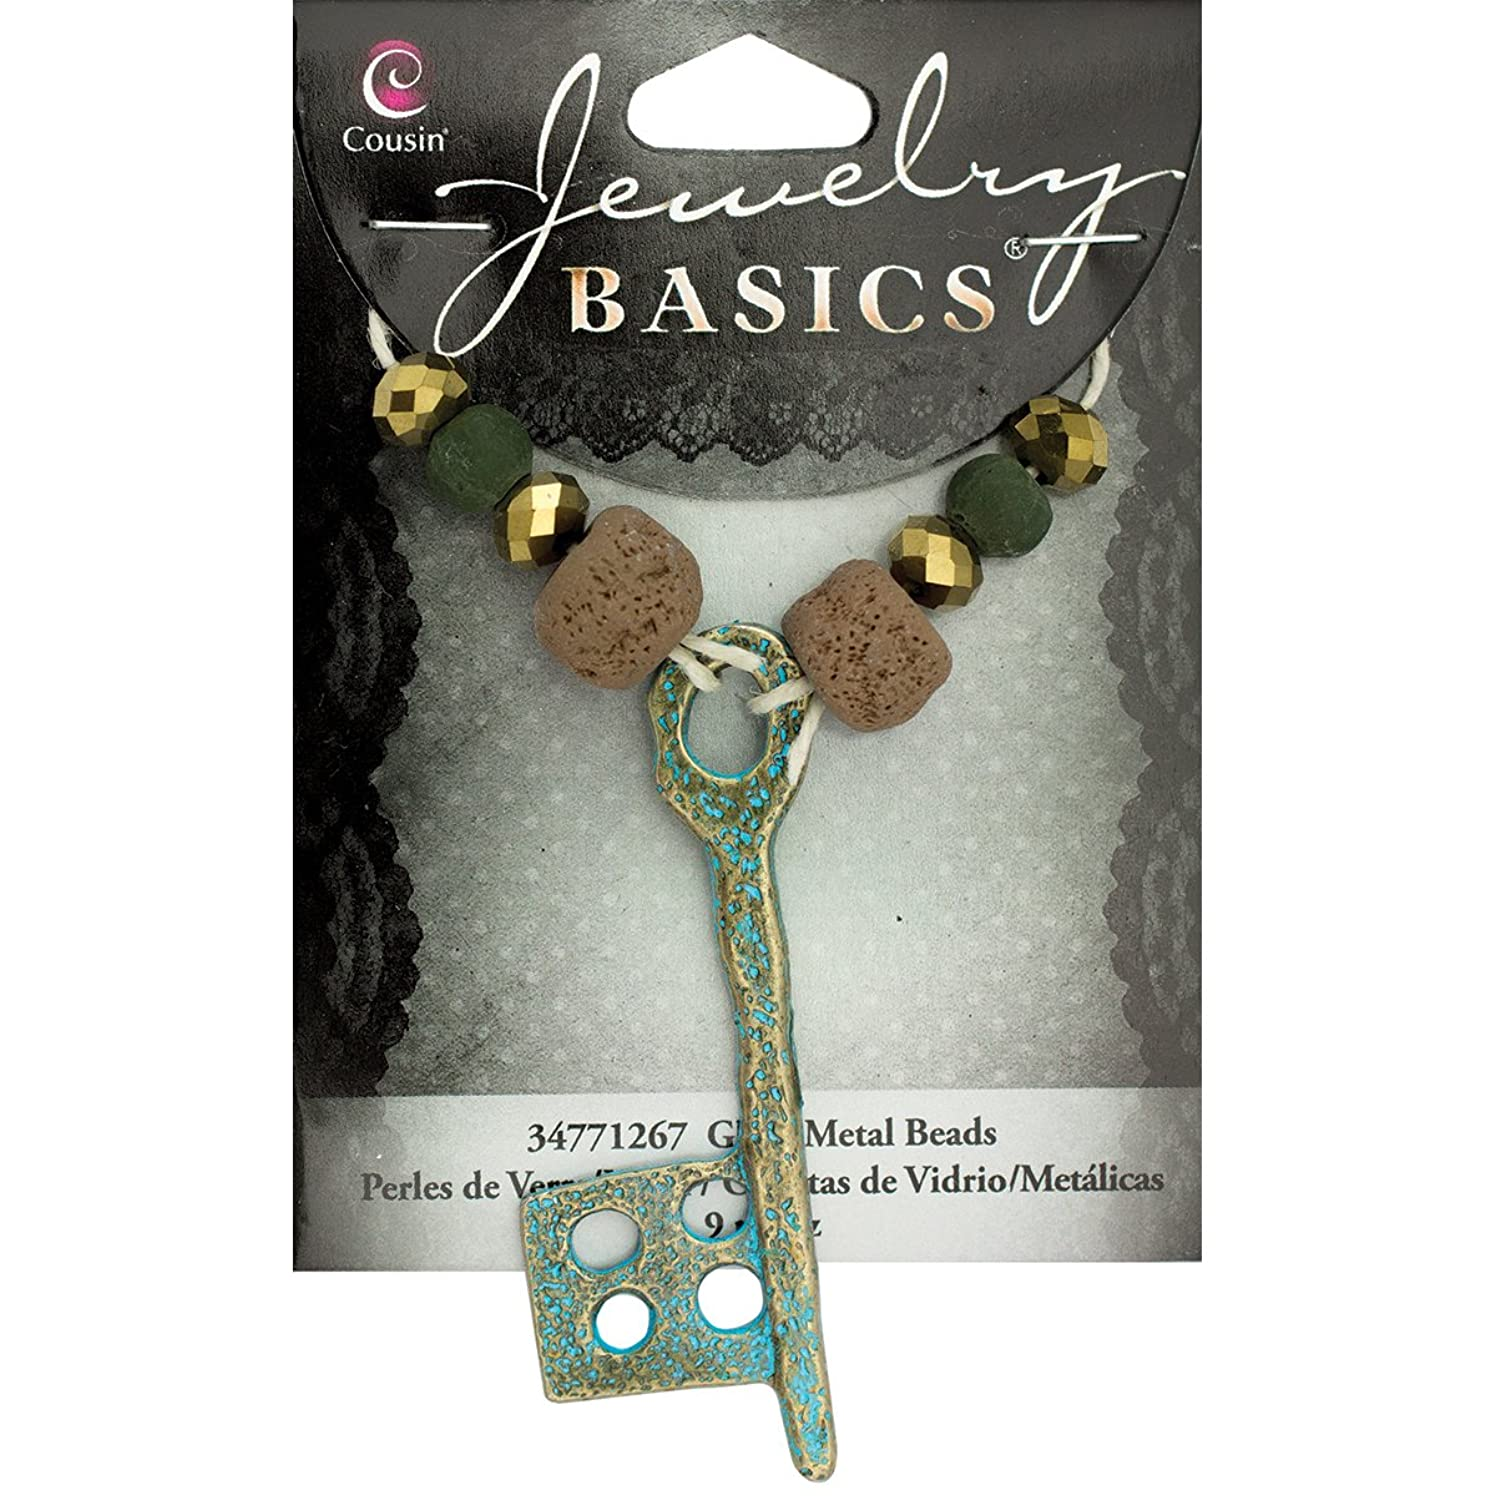 Cousin Jewelry Basics Metal Accents-Clay Key with Beads (9 Pack)